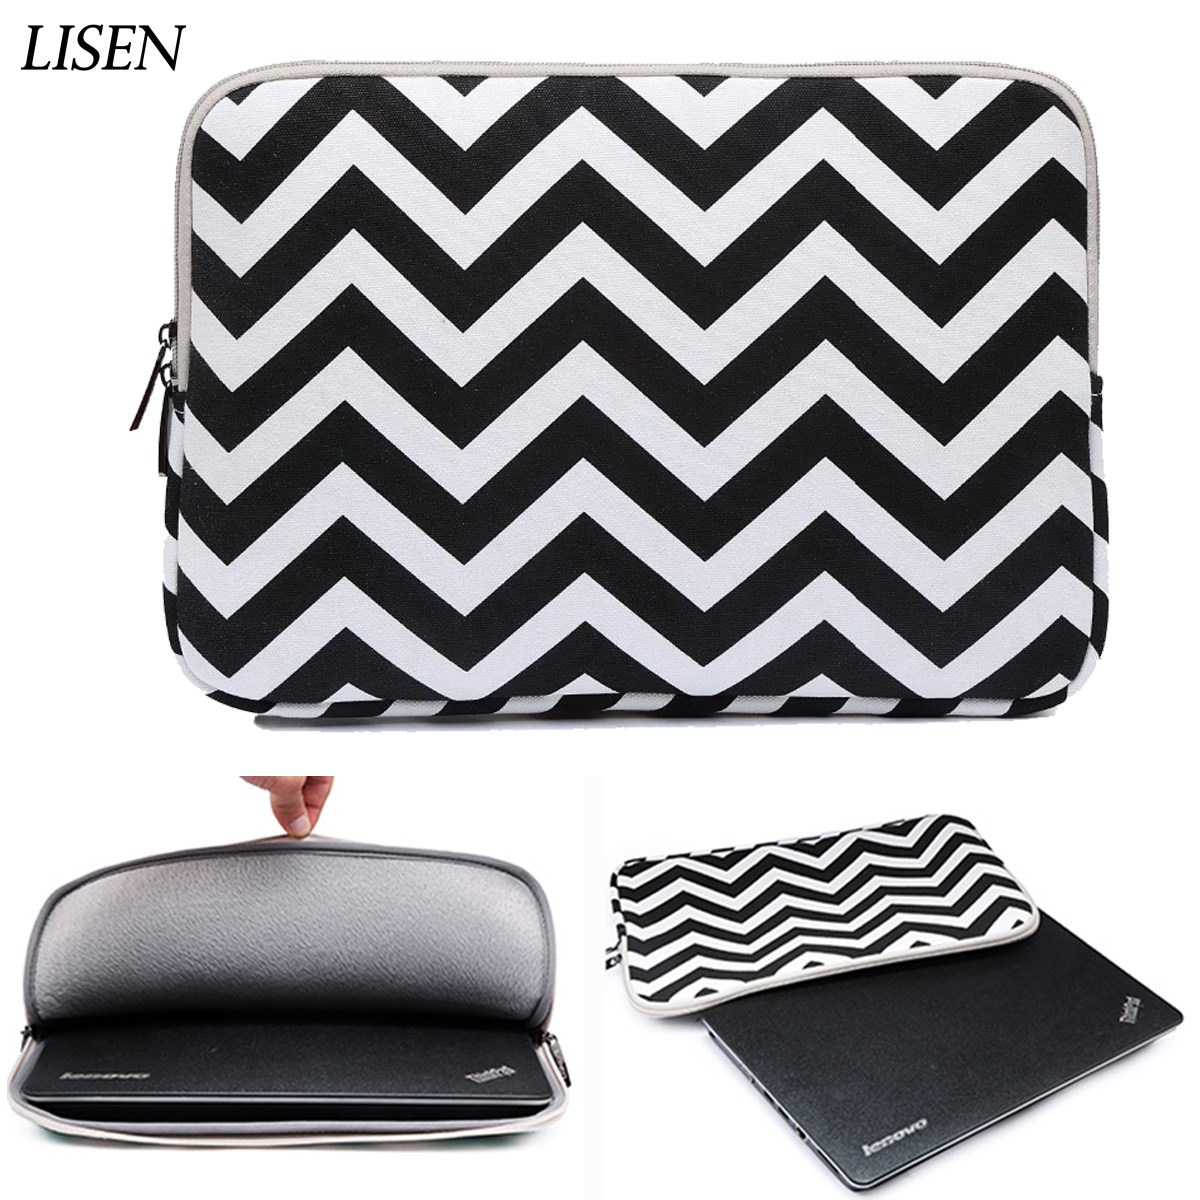 Laptop bag Sleeve Case For Macbook Air Pro Retina 11 11.6 12 13 13.3 15 15.4 Notebook for ipad mini 7.9 ipad air 9.7 table cover